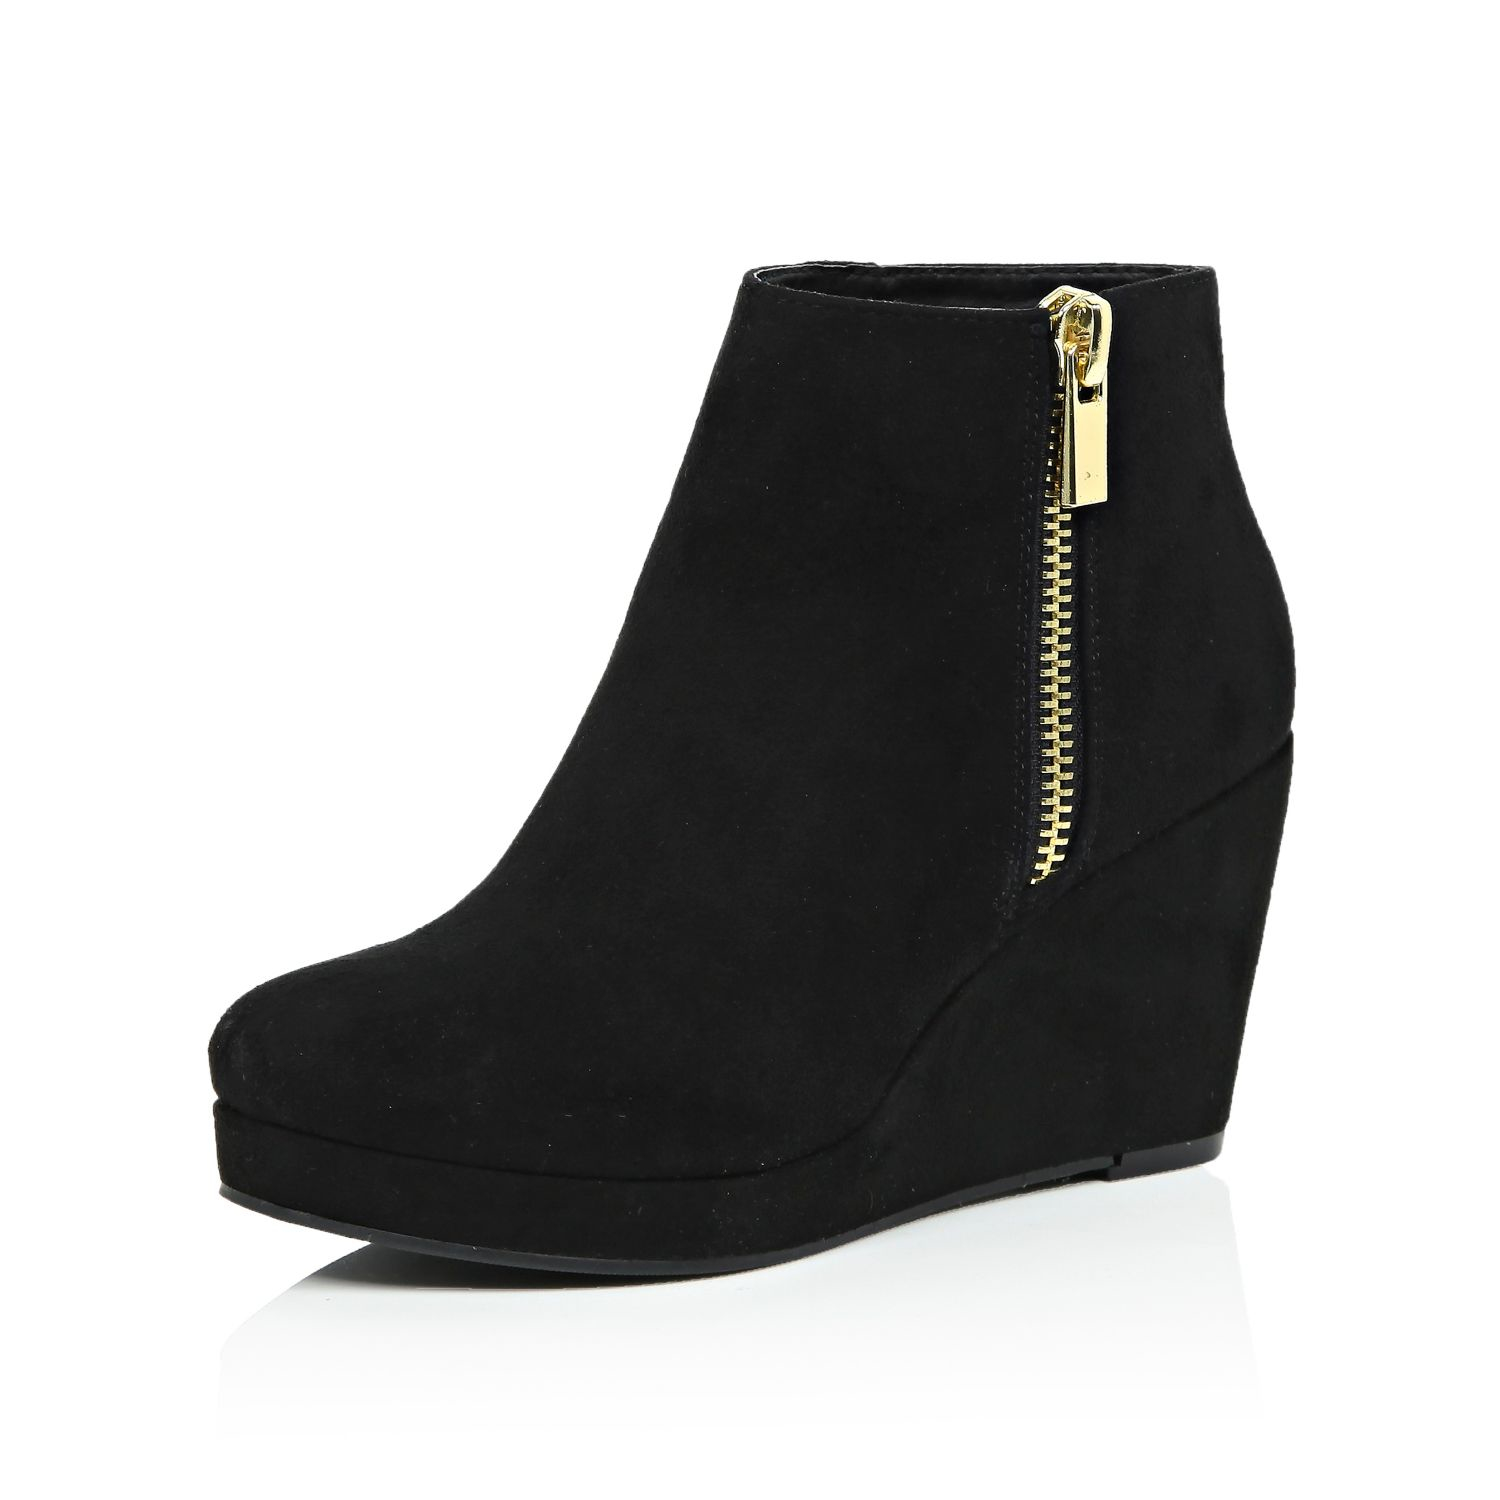 Black wedge shoes with ankle